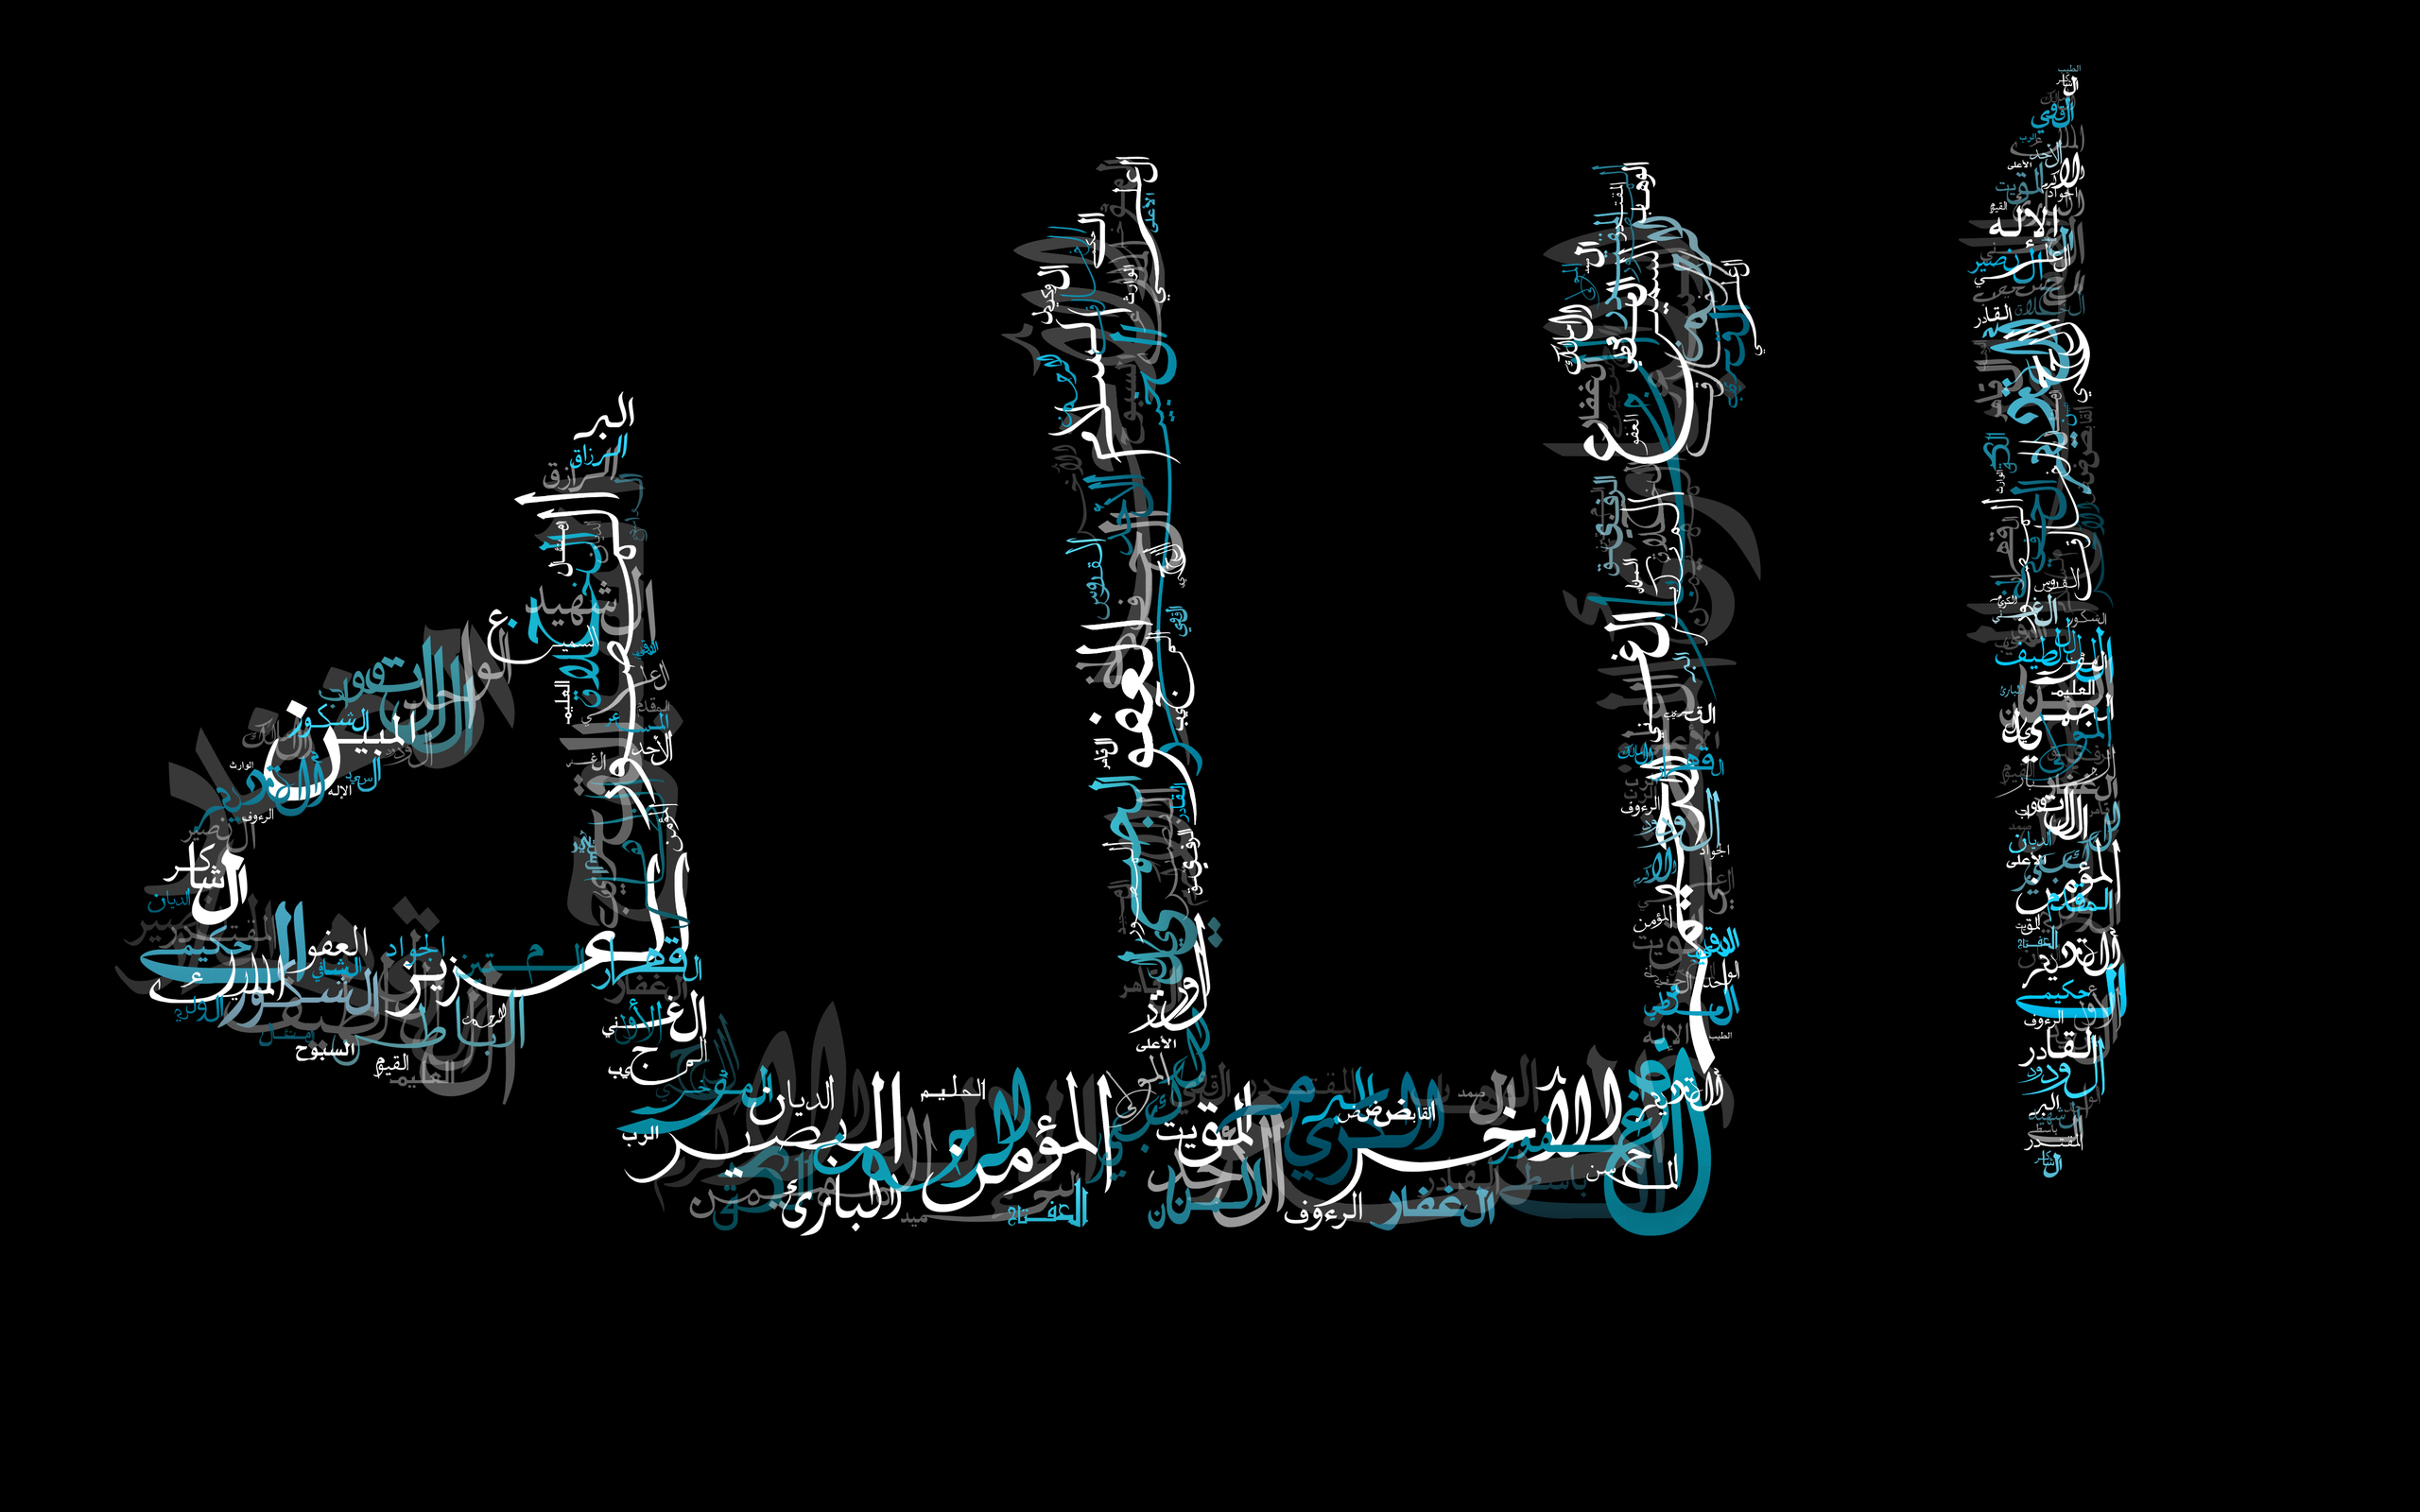 calligraphy wallpapers, pictures, images